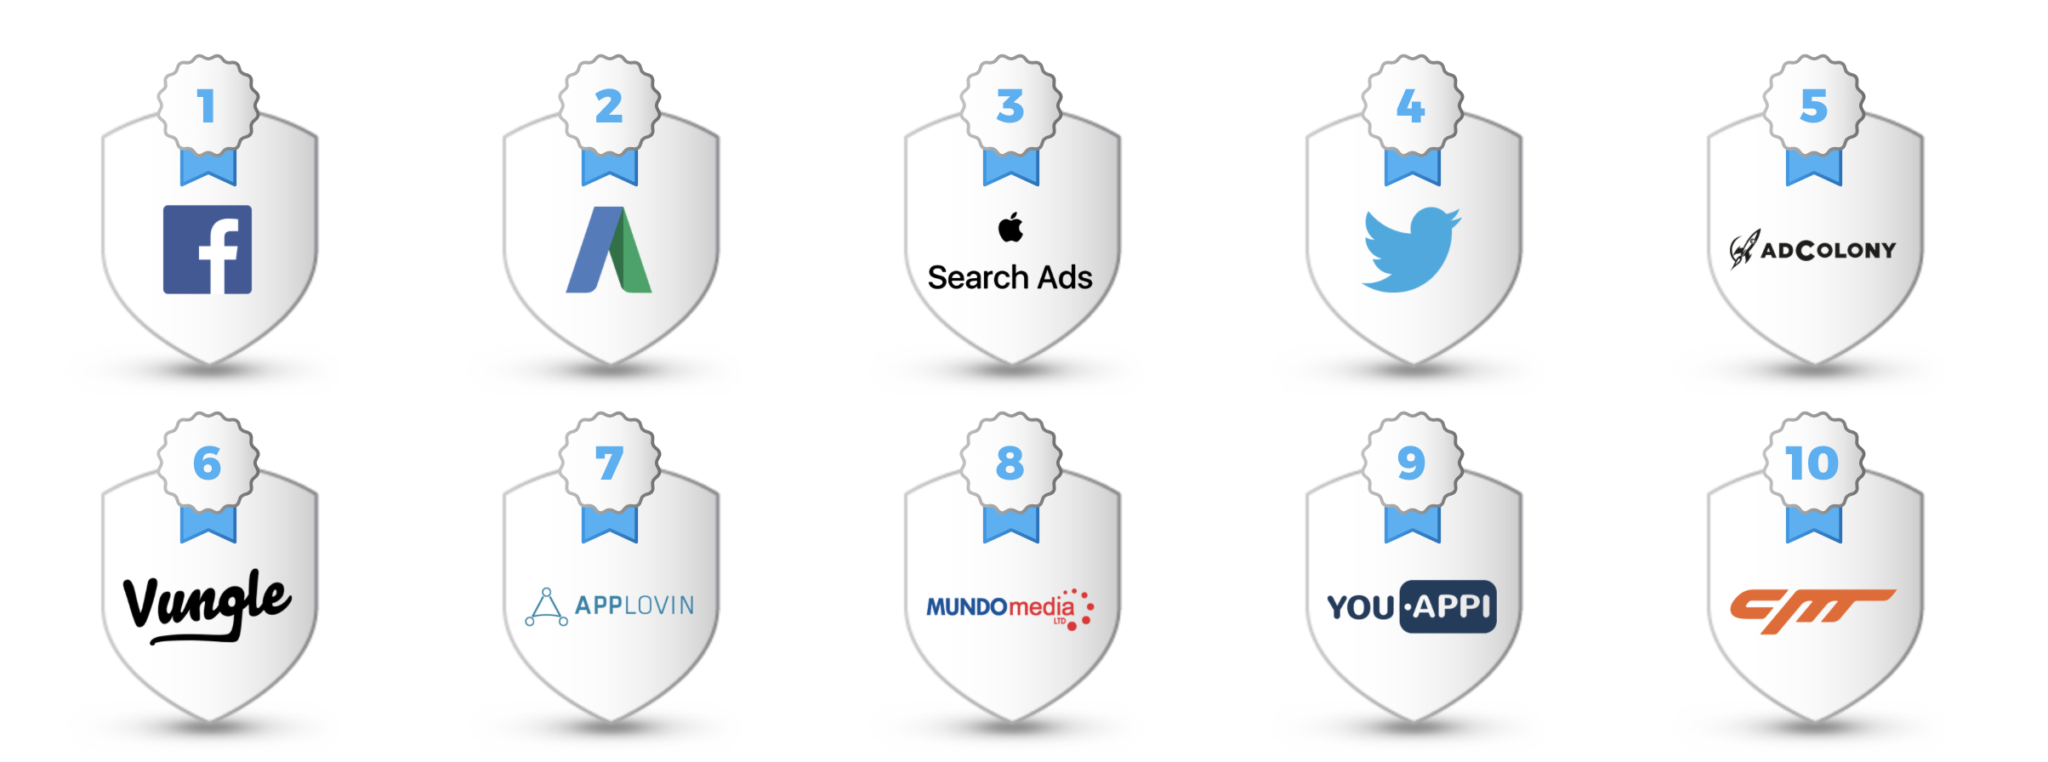 What are the best Ad Networks for Mobile / App advertising.